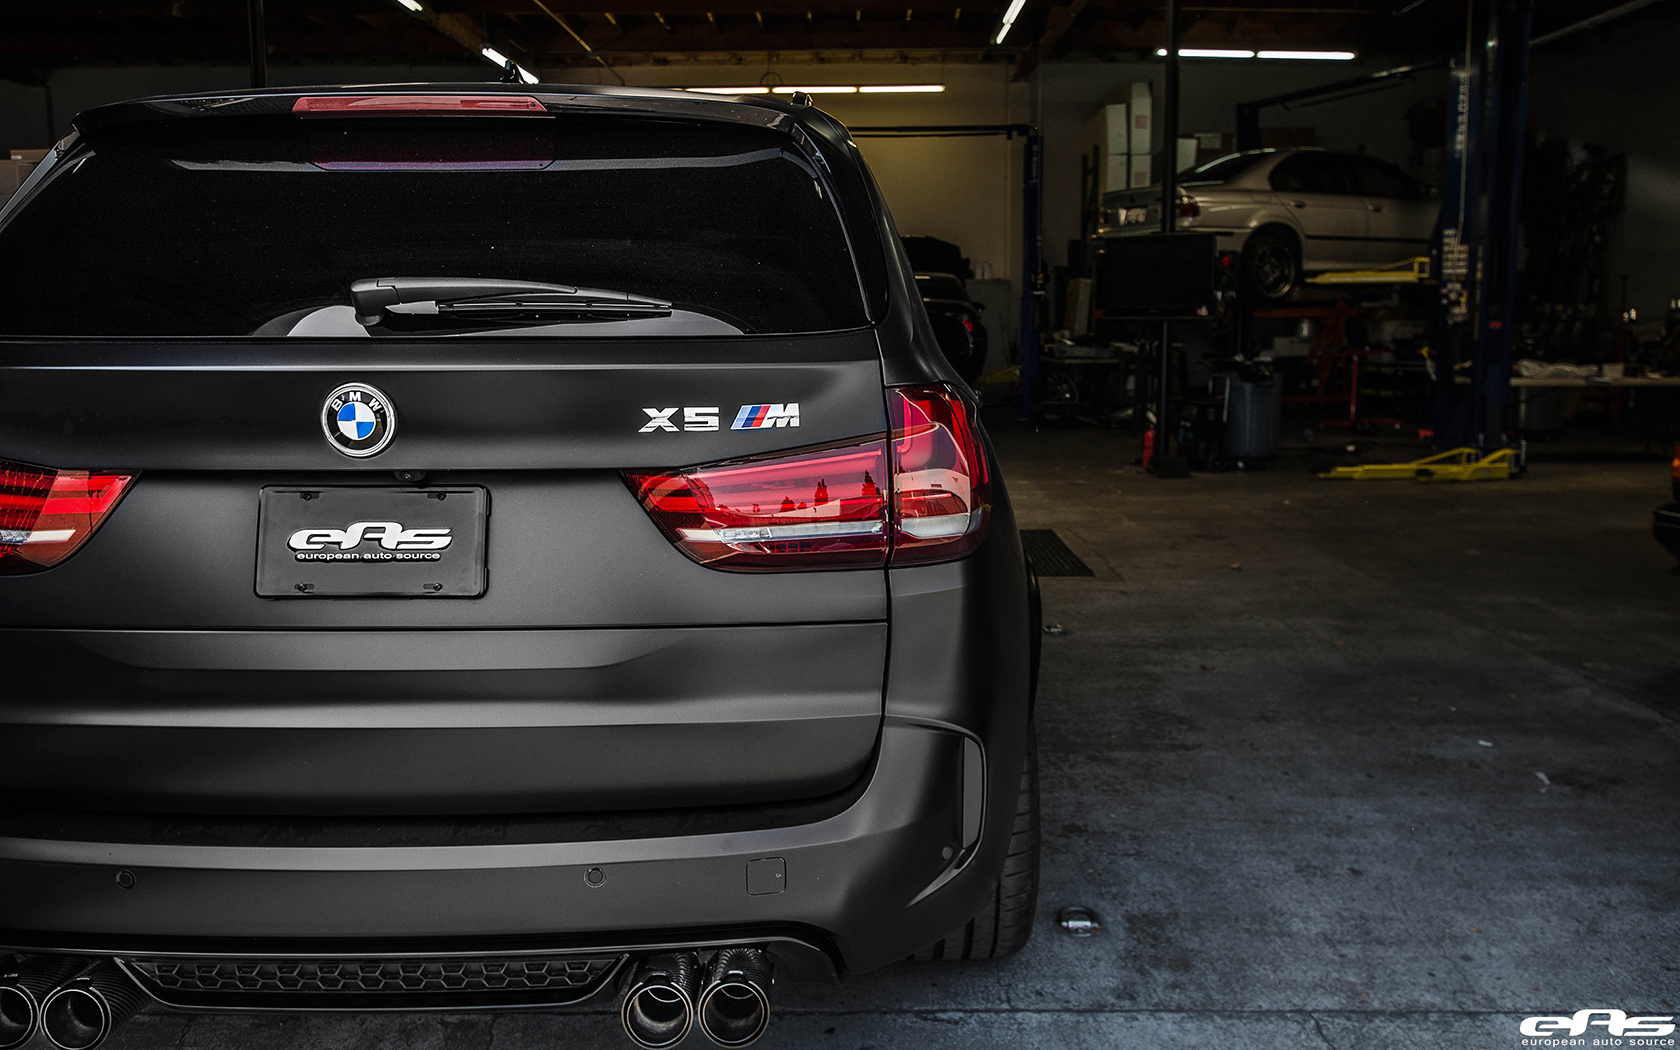 Bmw All Models List >> Matte Black BMW X5 M With Some Aftermarket Goodies